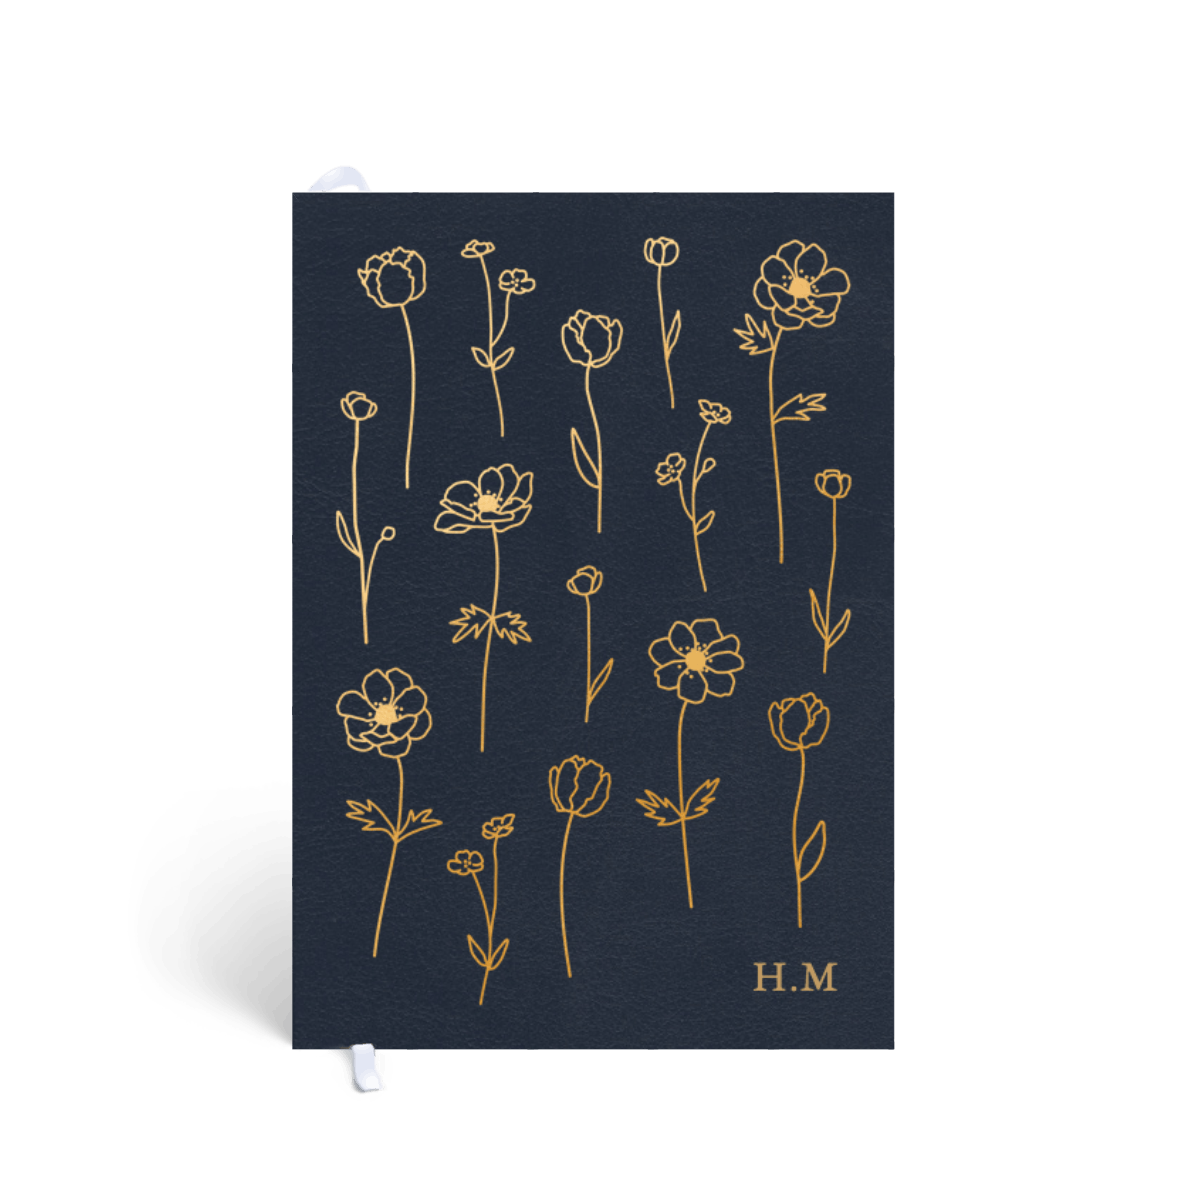 Https%3a%2f%2fwww.papier.com%2fproduct image%2f104361%2f114%2fnavy pressed flowers 27197 front 1581679231.png?ixlib=rb 1.1